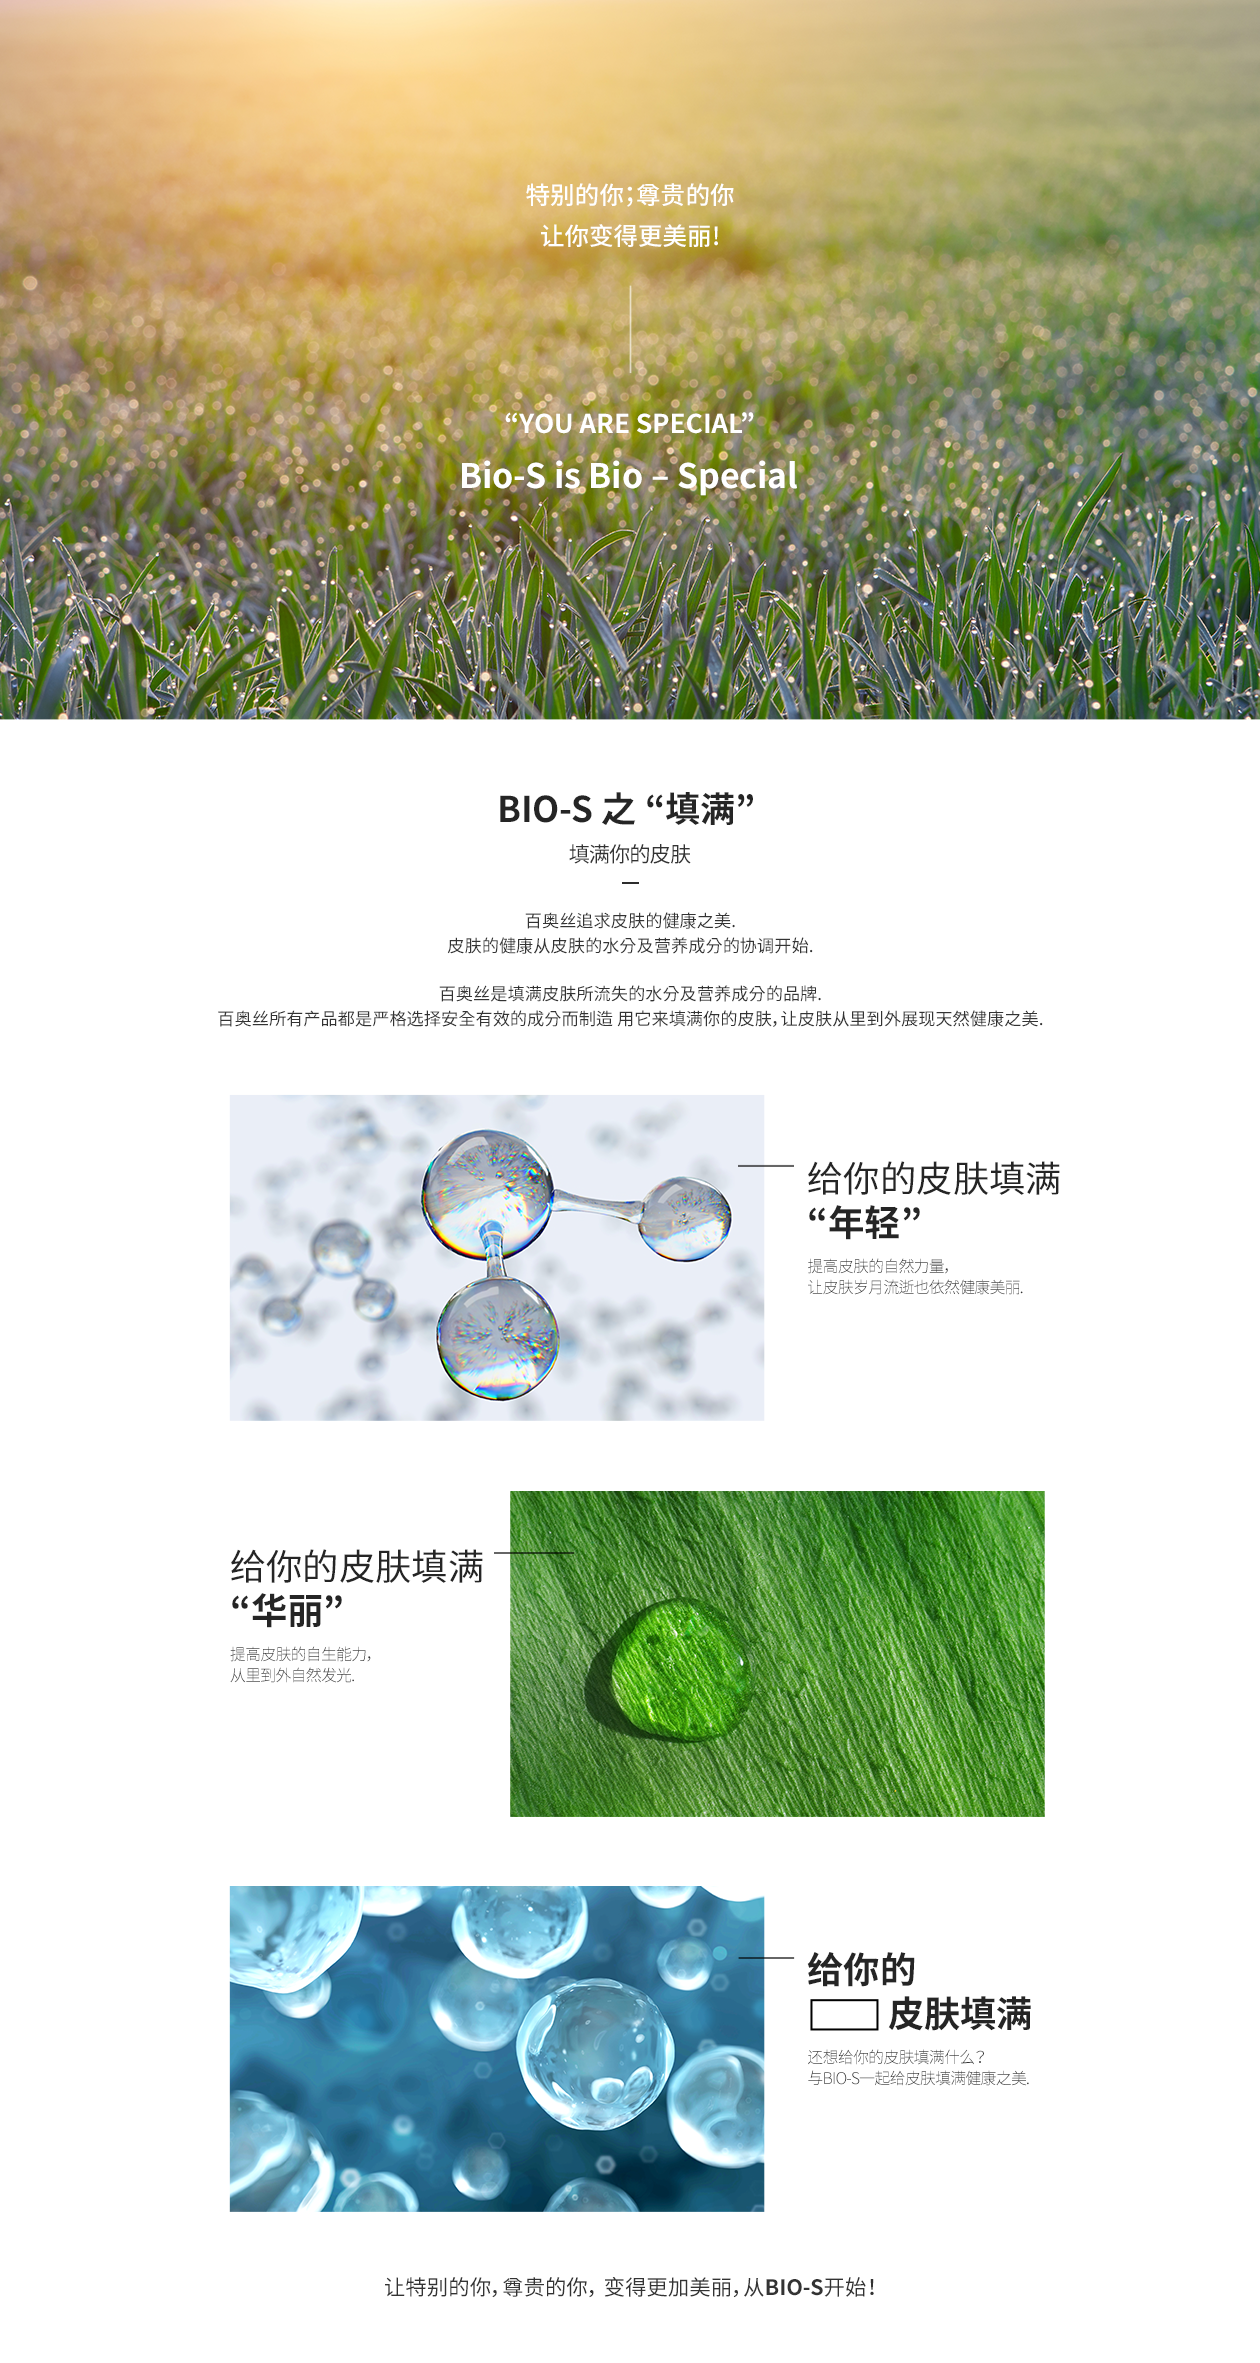 ABOUT Bio-S